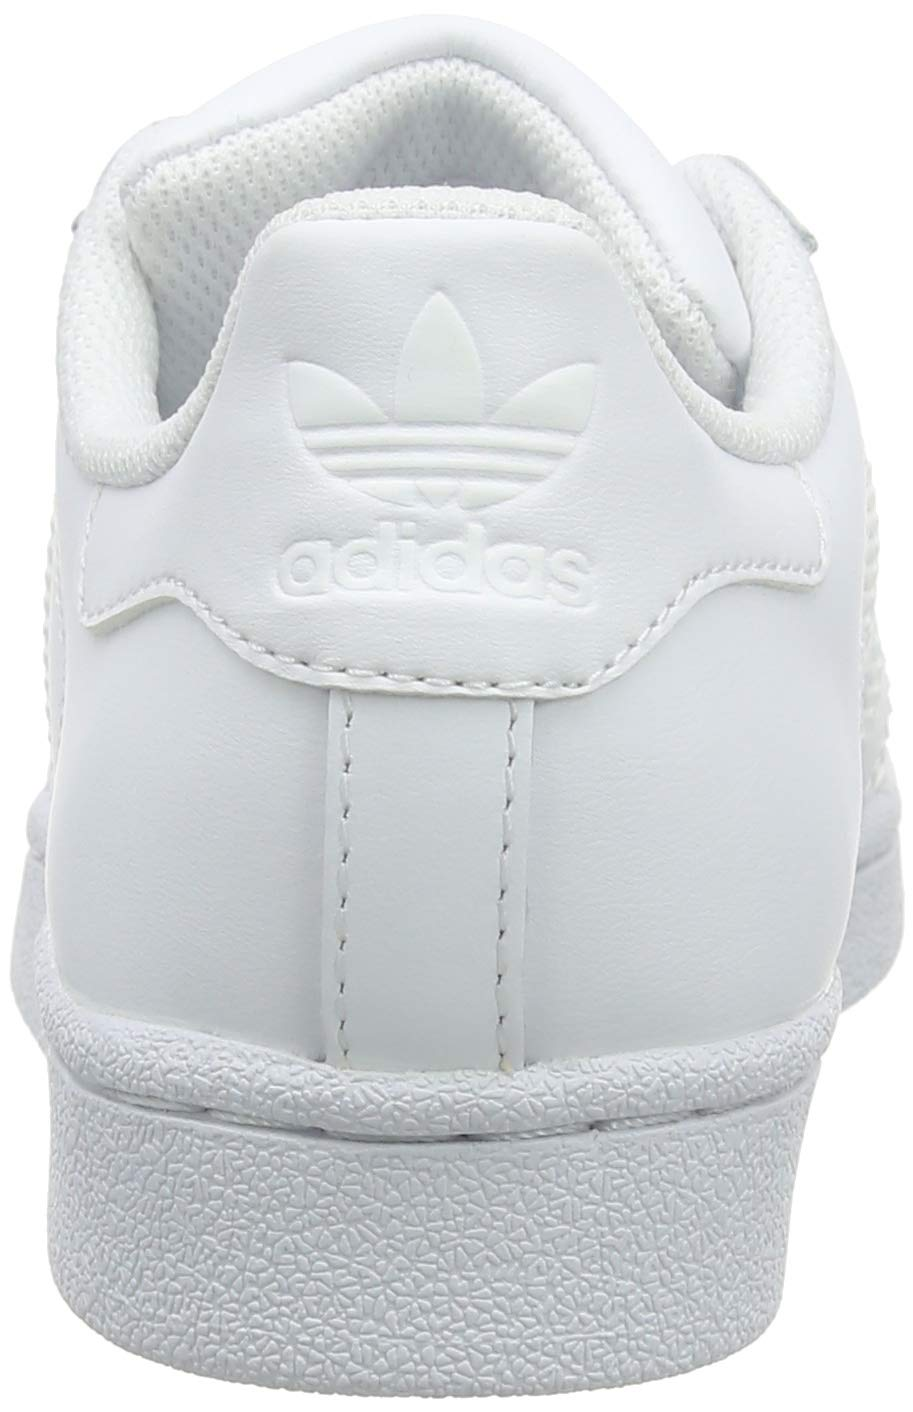 adidas Originals Superstar BB2872, Sneakers Unisex - Bambini 2 spesavip